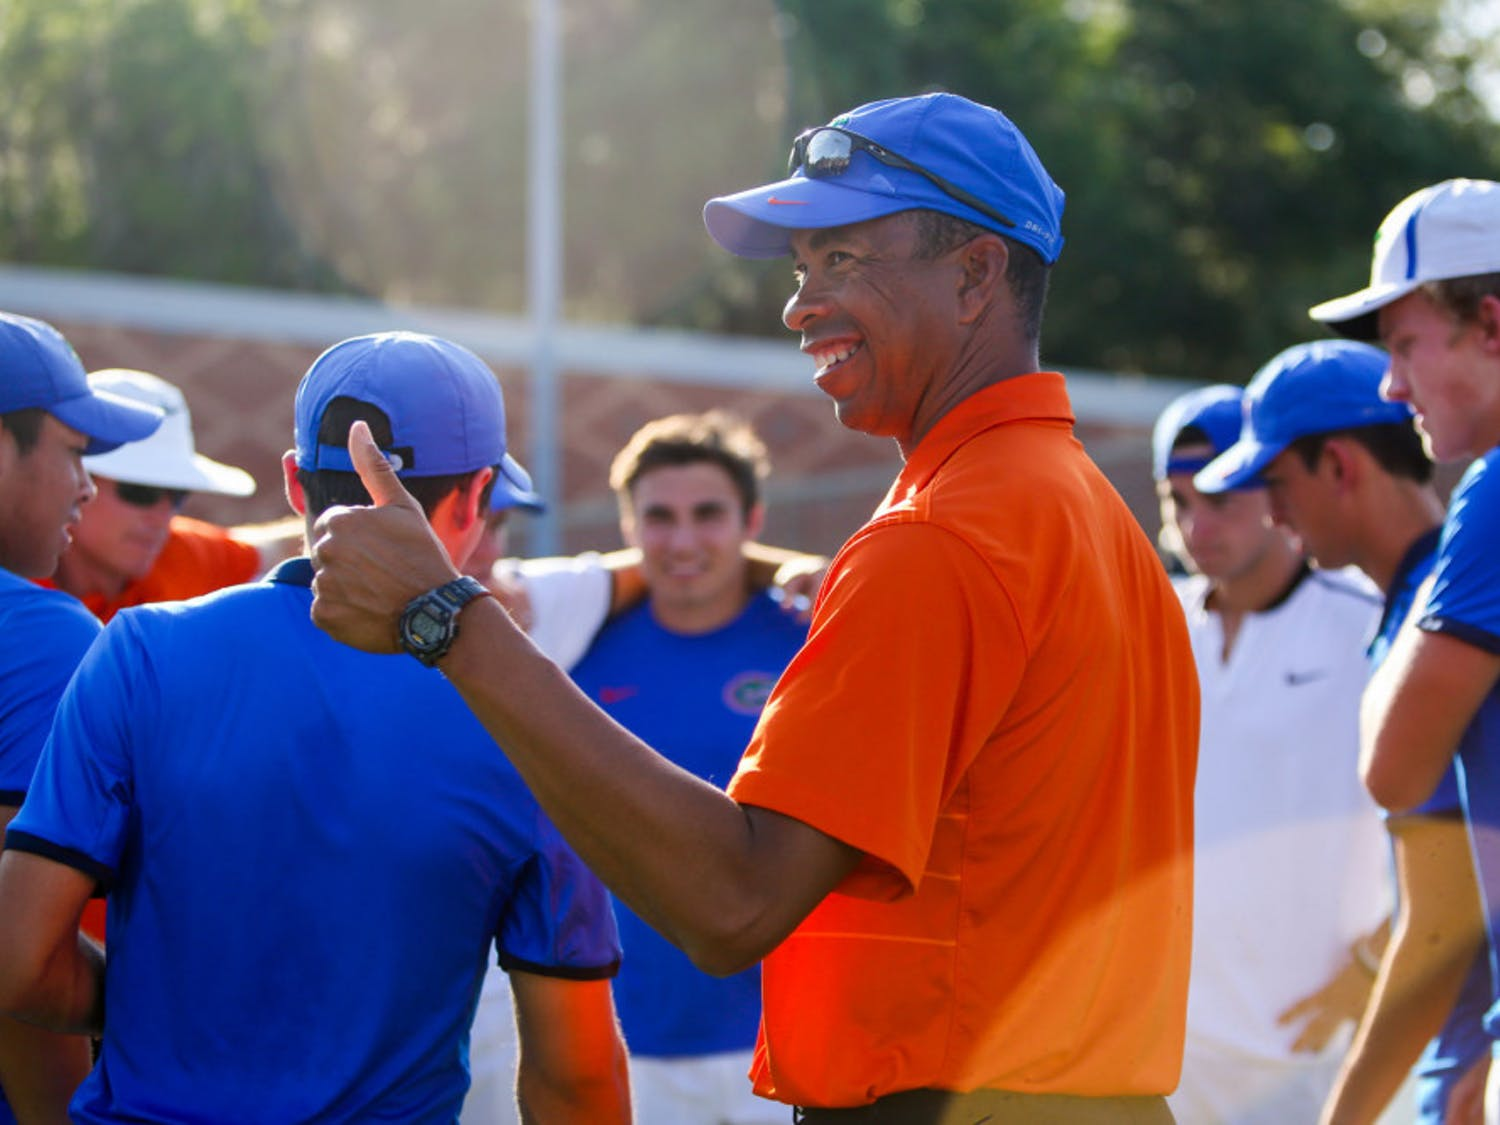 UF men's tennis coach Bryan Shelton joins his team after its Senior Day match with Alabama on April 13. The Gators went 19-10 on the season and qualified for the NCAA Tournament.